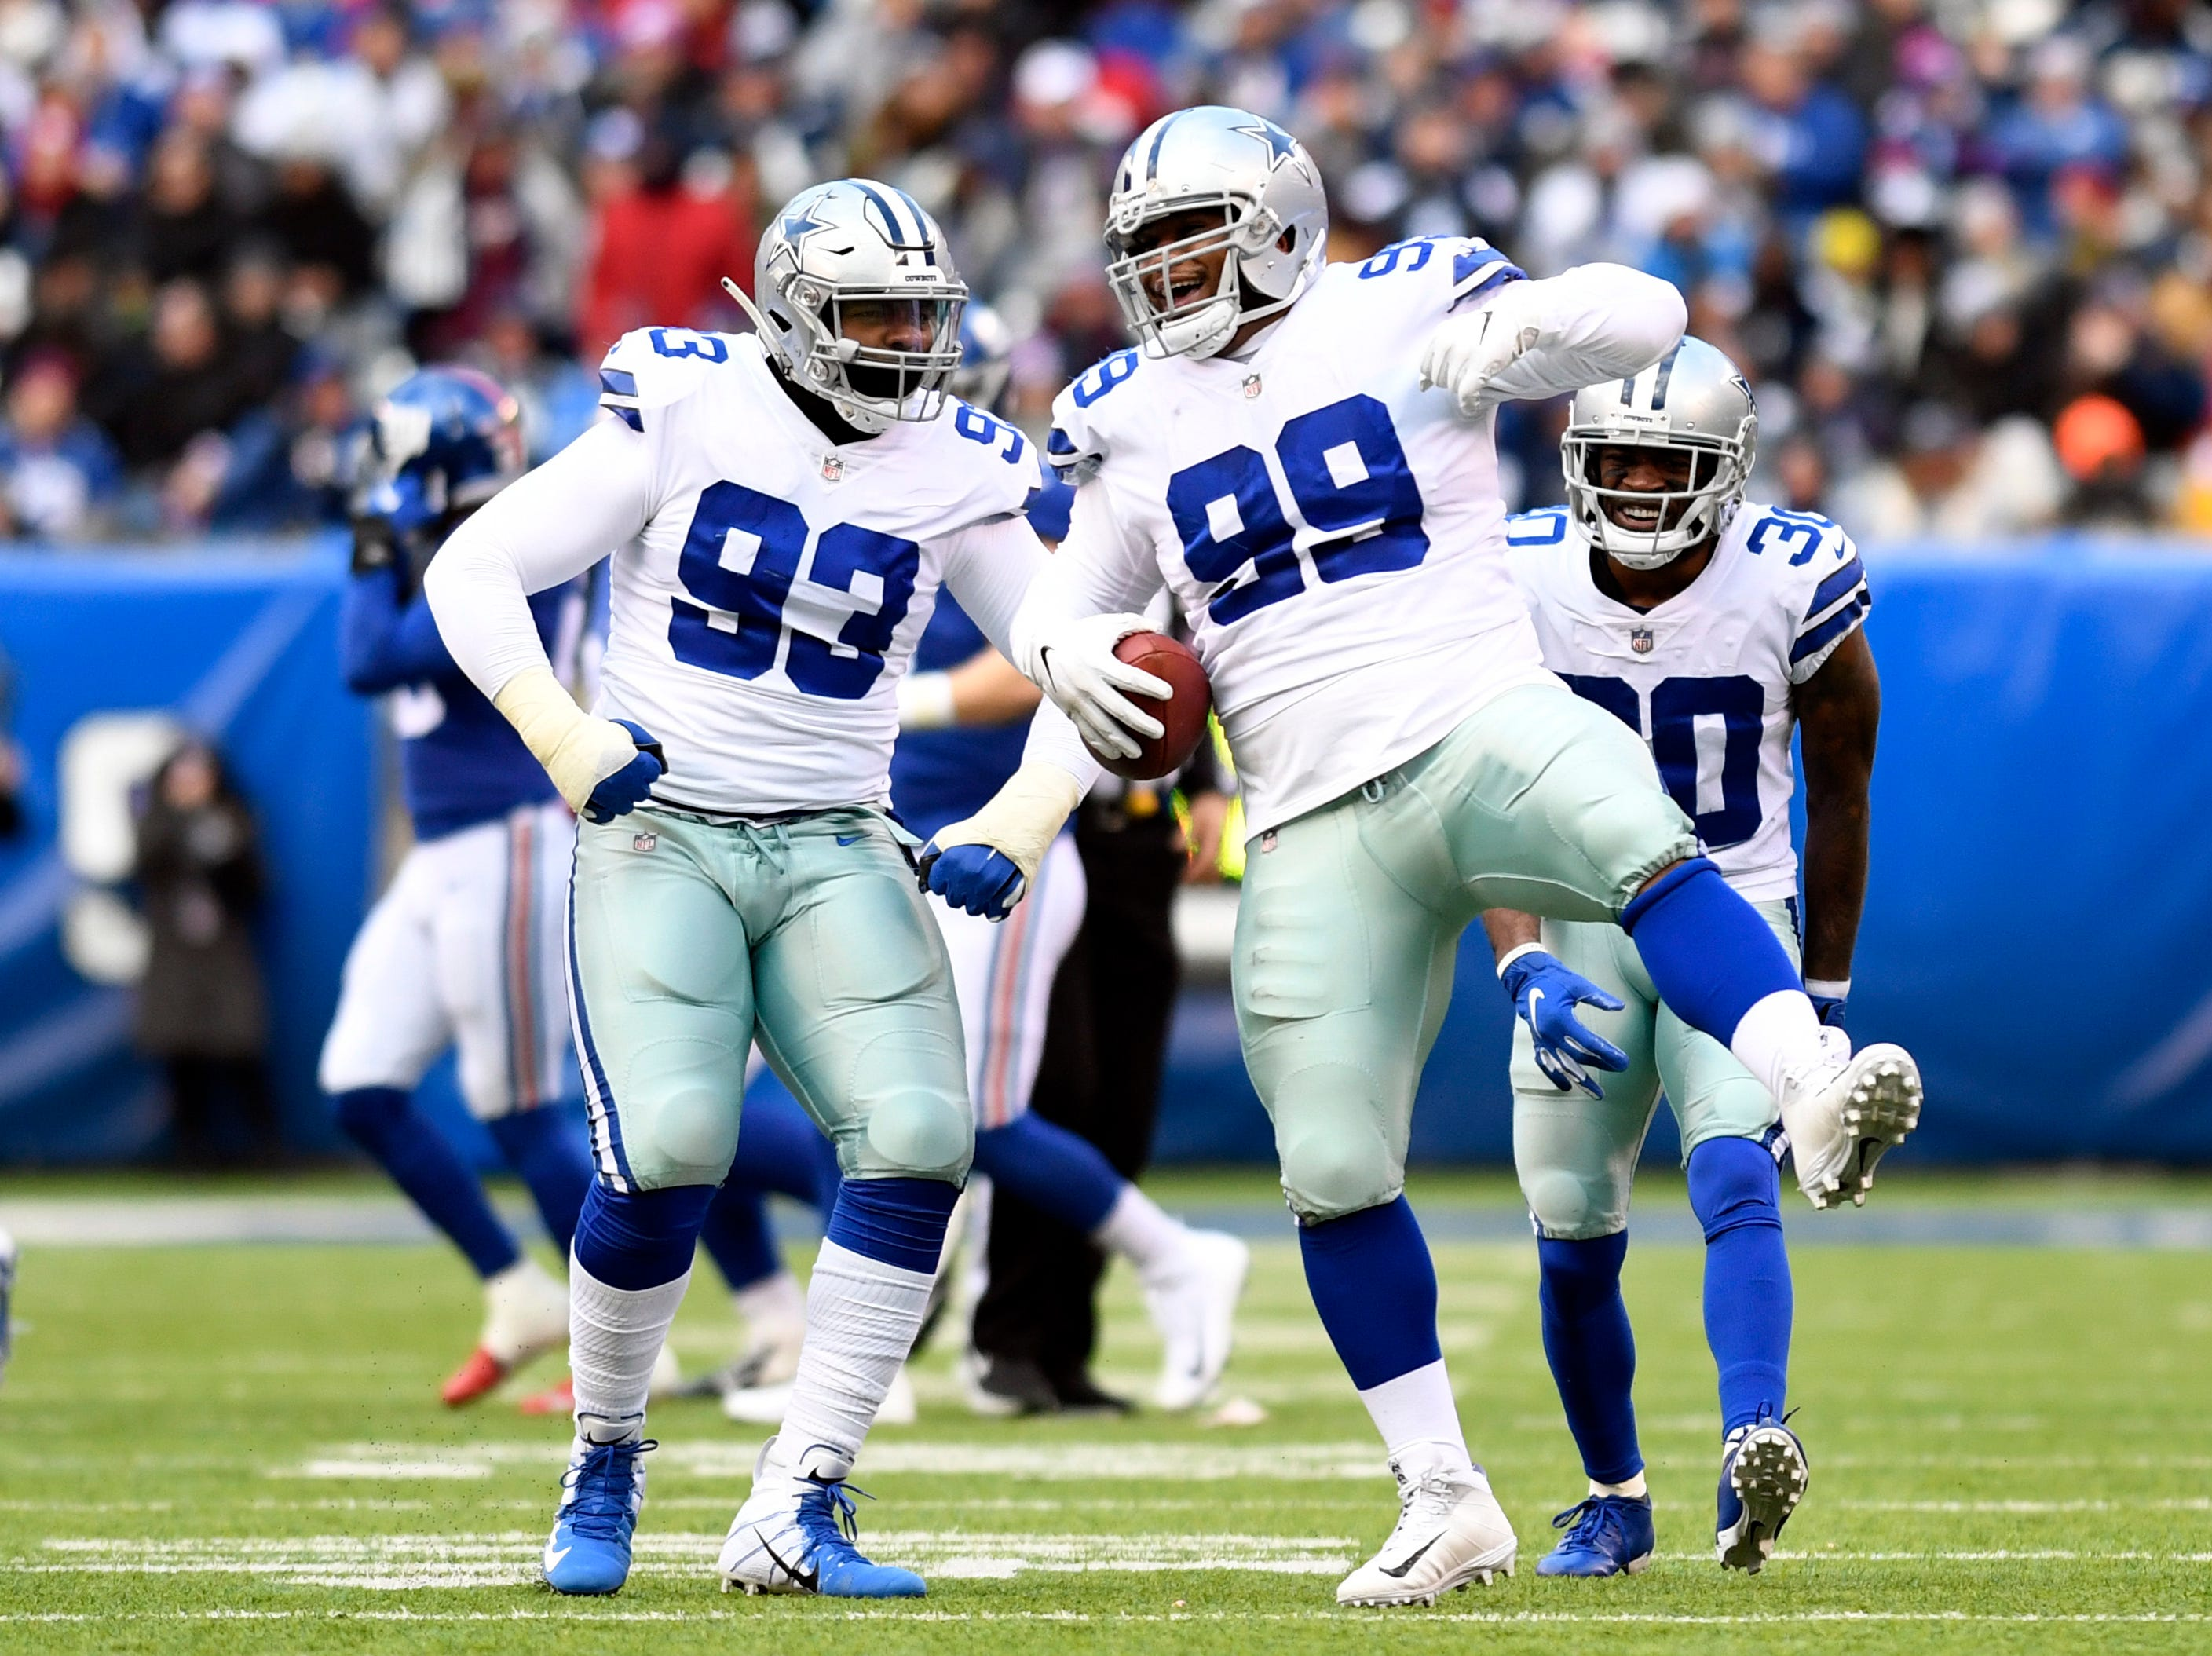 Dallas Cowboys defensive tackle Antwaun Woods (99) celebrates an interception in the first half. The New York Giants face the Dallas Cowboys in the last regular season game on Sunday, Dec. 30, 2018, in East Rutherford.